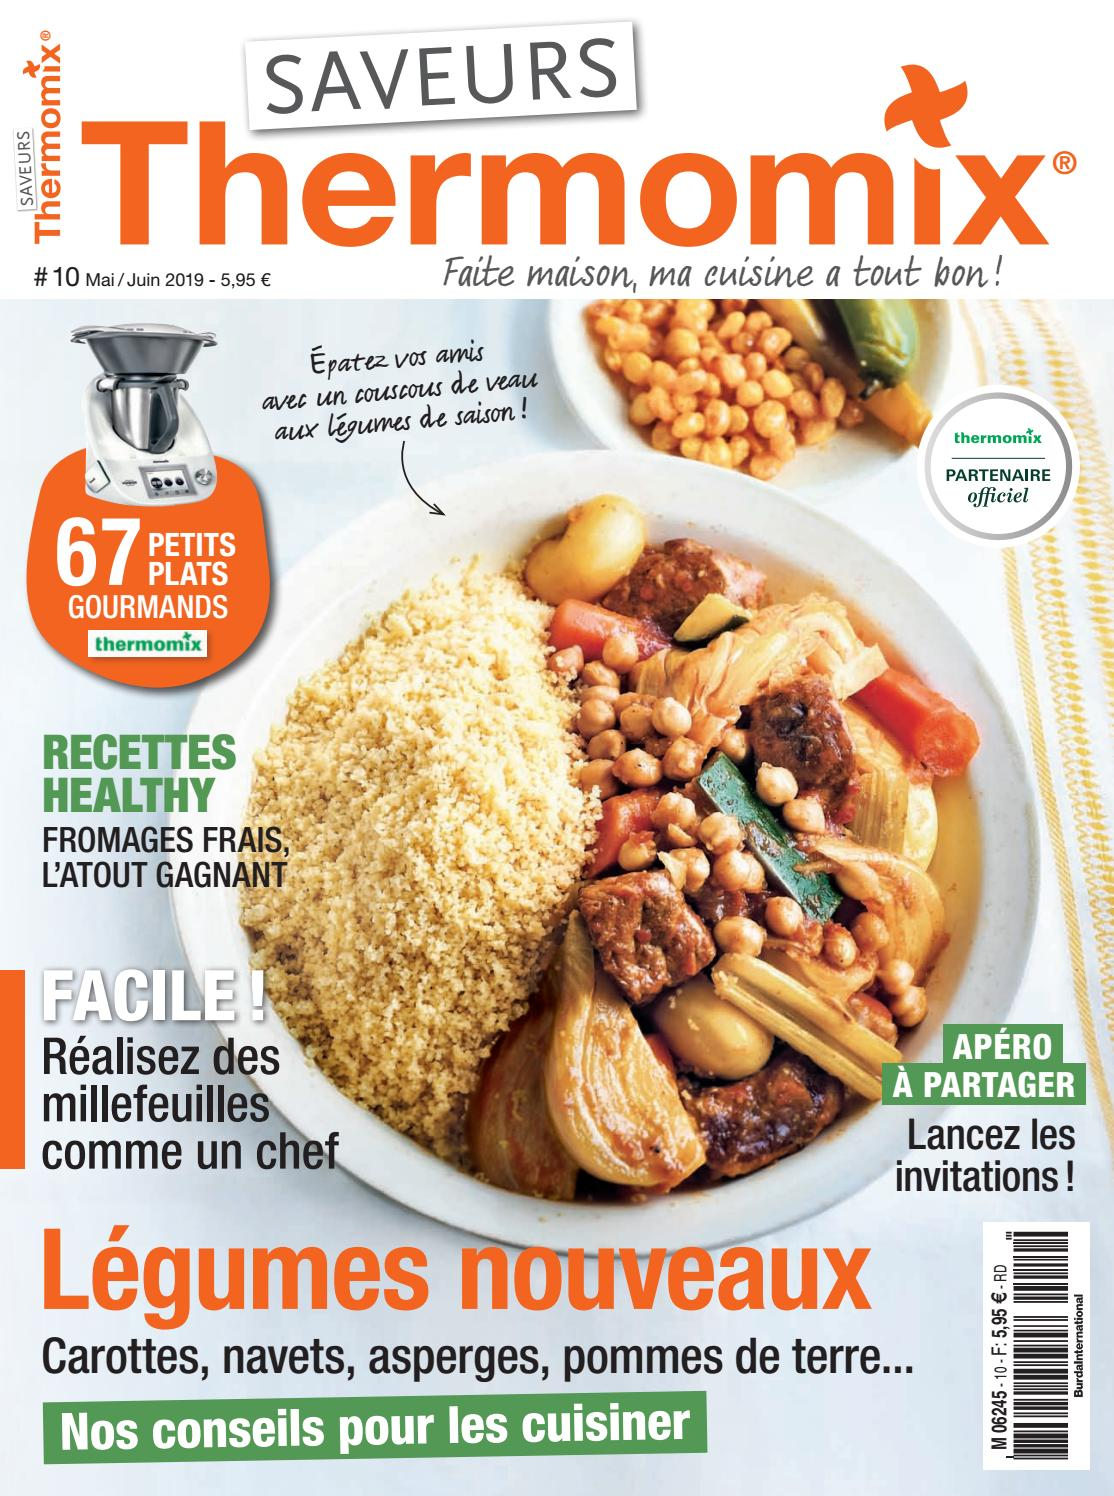 Cuisinez Comme Les Chefs Thermomix saveurs thermomix n° 10saveurs magazine - issuu